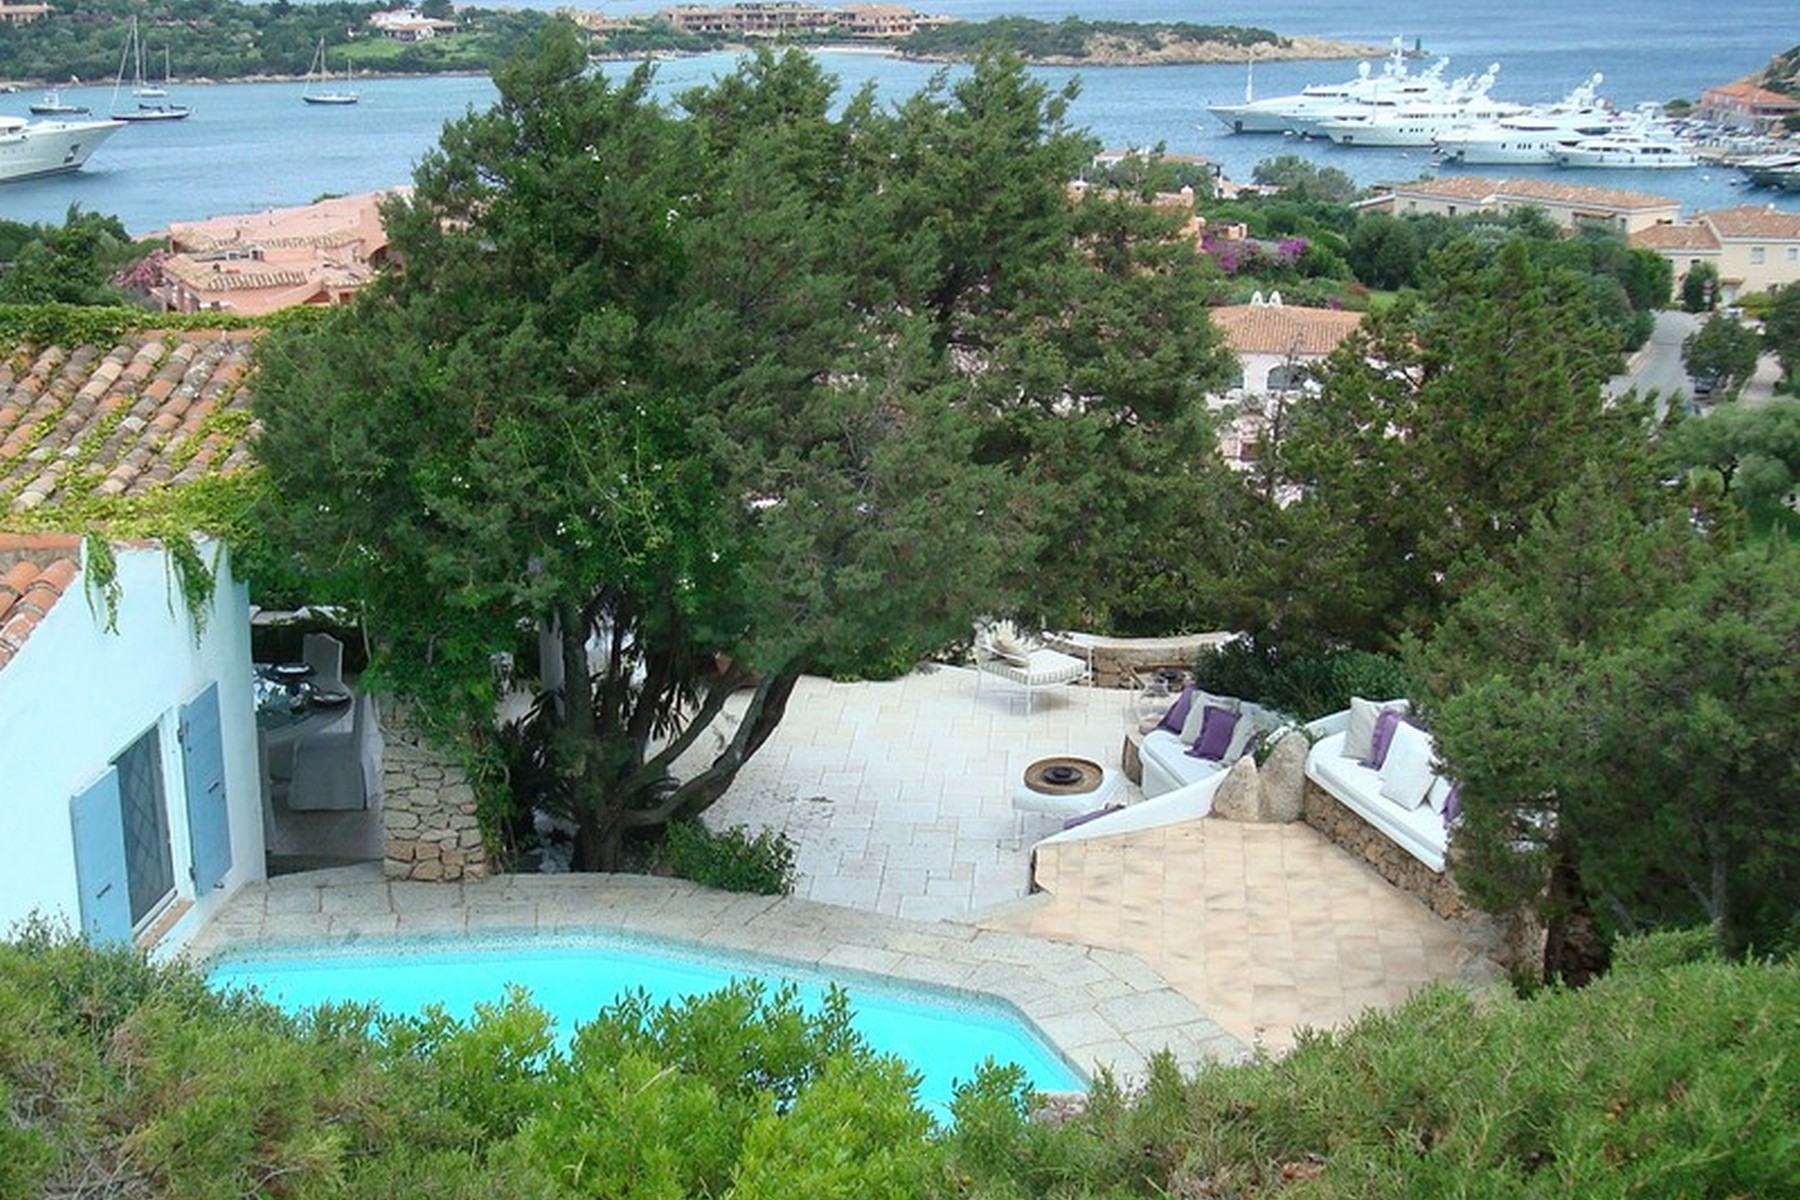 Single Family Home for Sale at Iconic Sardinia-style villa with pool Via delle Caravelle Porto Cervo, 07021 Italy